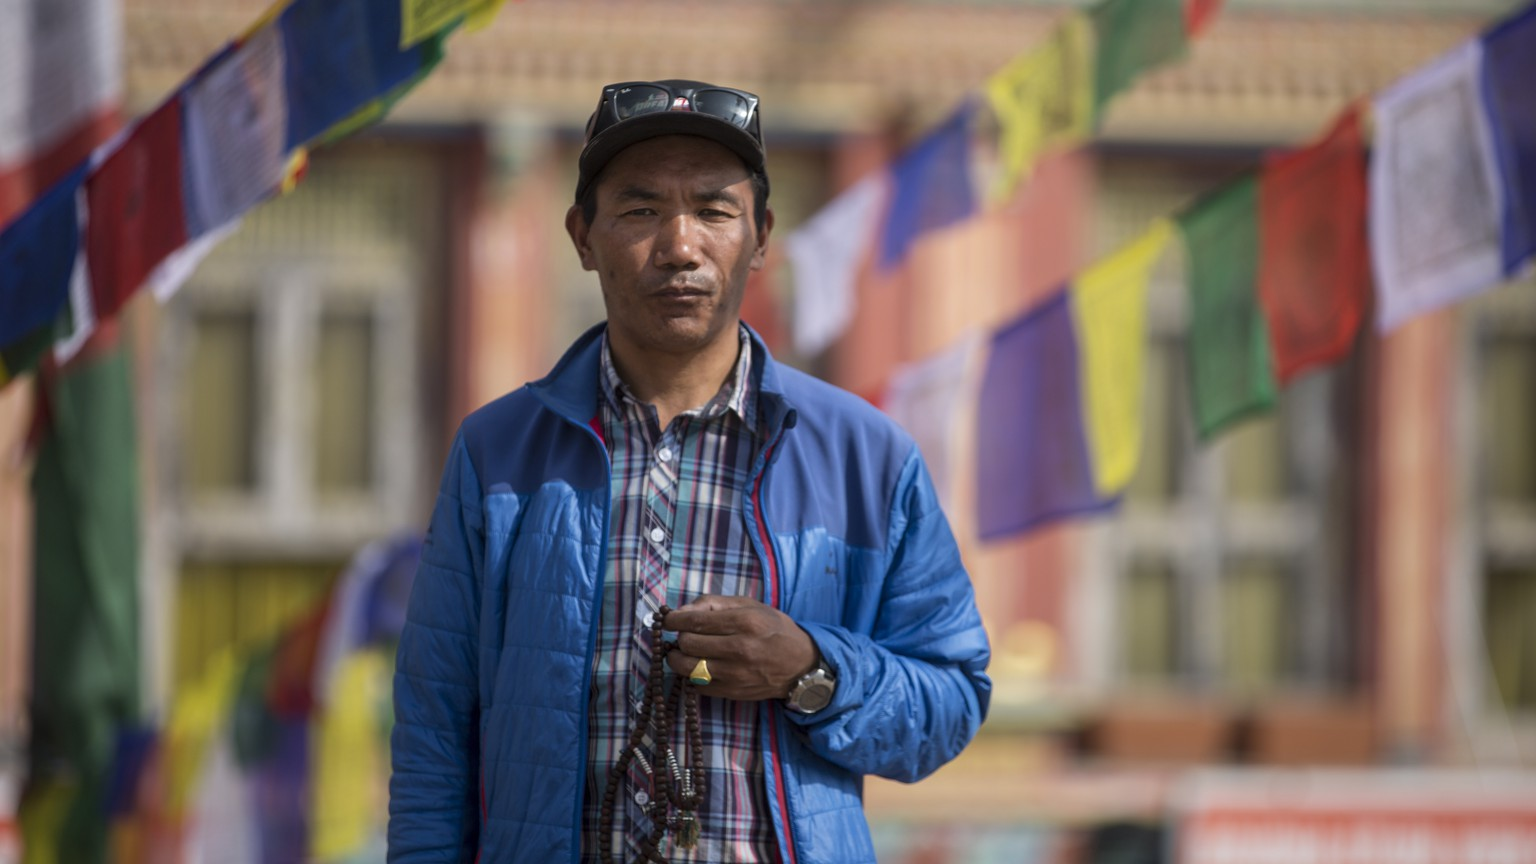 epa07514990 Nepalese 49-year-old veteran mountaineer Kami Rita Sherpa prays at Bauddhanath Stupa before he leaves for the Everest summit in Kathmandu, Nepal, 10 April 2019 (issued 19 April 2019). Kami Rita, a professional mountaineer guide has successfully climbed Mount Everest for the 22nd time in May 2018 and will attempt a world record by climbing Mount Everest for the 23nd time this season.  EPA/NARENDRA SHRESTHA To go with EFE story.